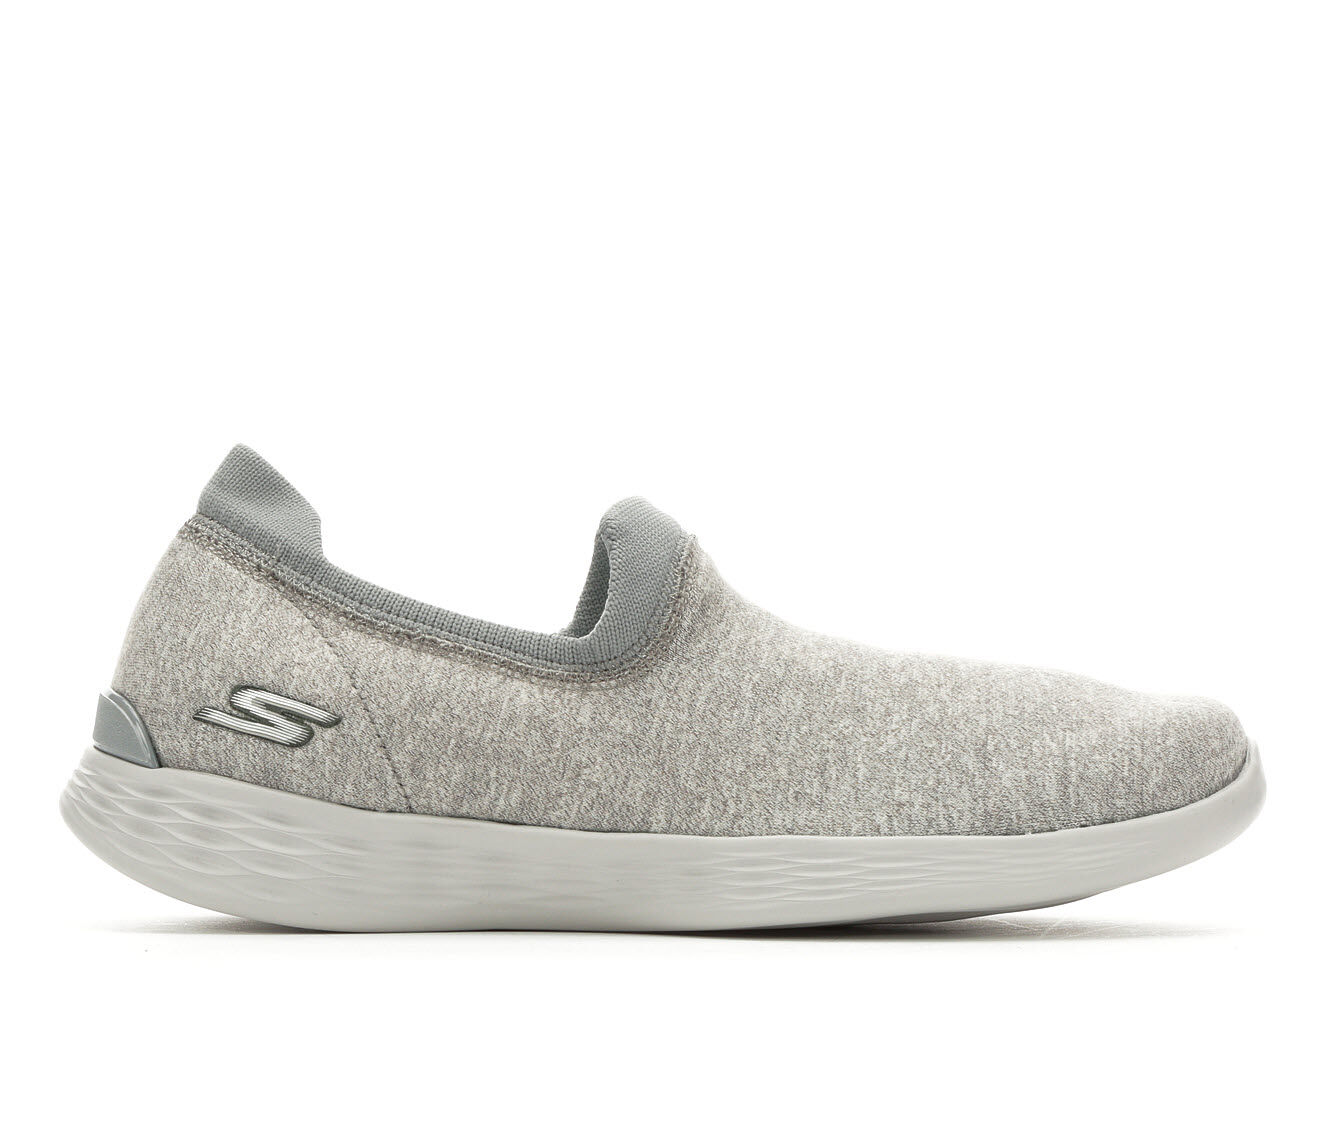 Women's Skechers Go You Perfection 15821 Slip-On Shoes Grey